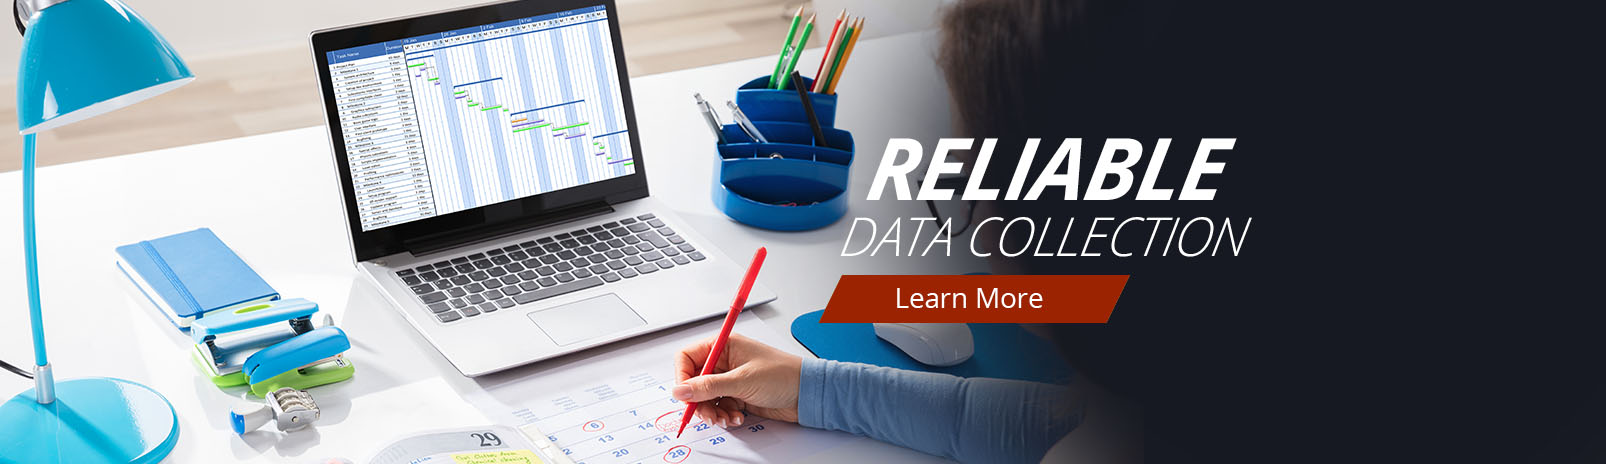 Reliable Data Collection